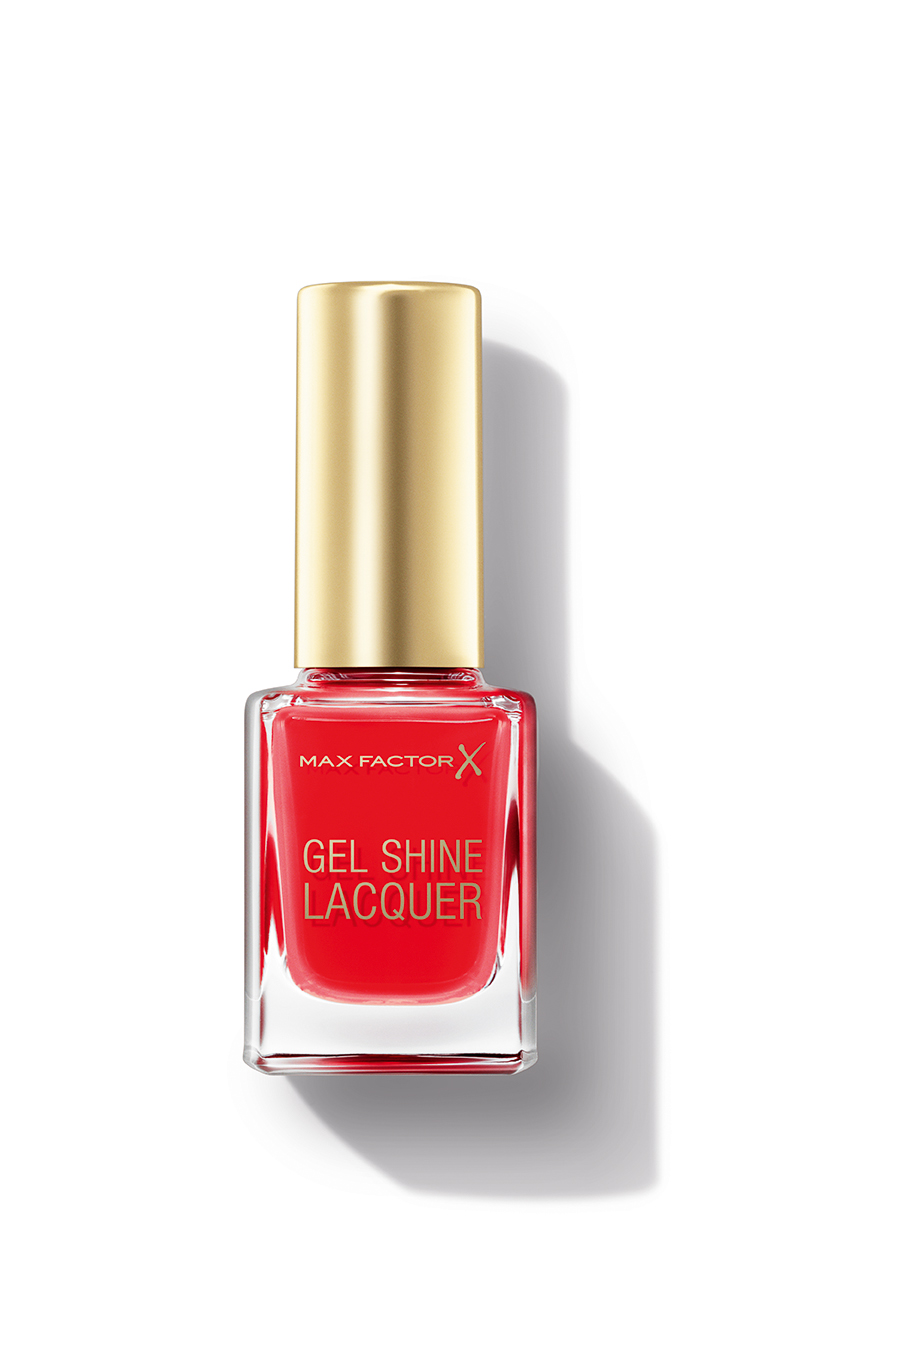 Max Factor Gel Shine Laquer Patent Poppy Pack .jpg